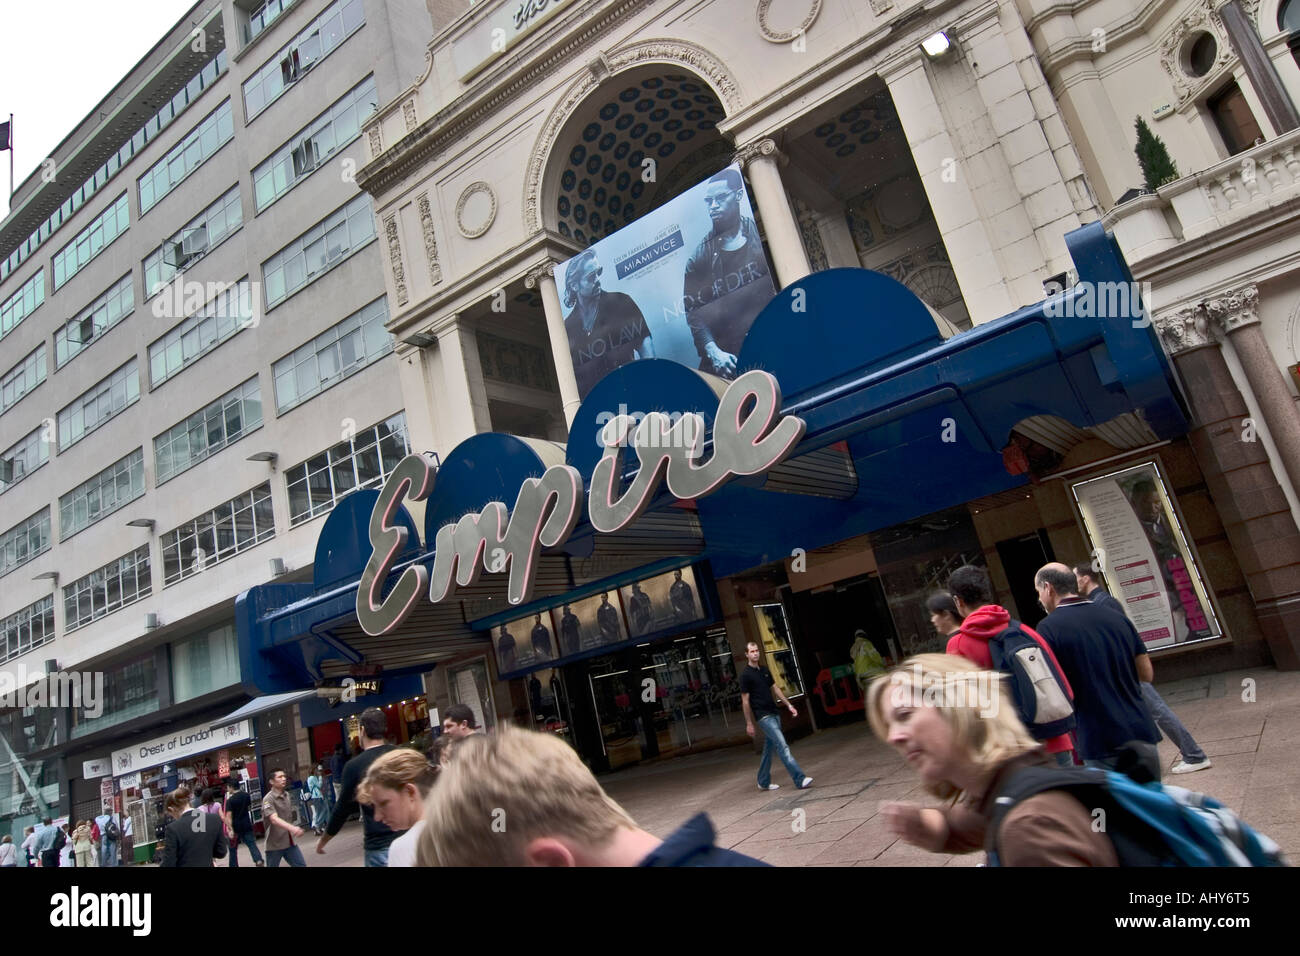 Empire cinema Leicester Square London - Stock Image